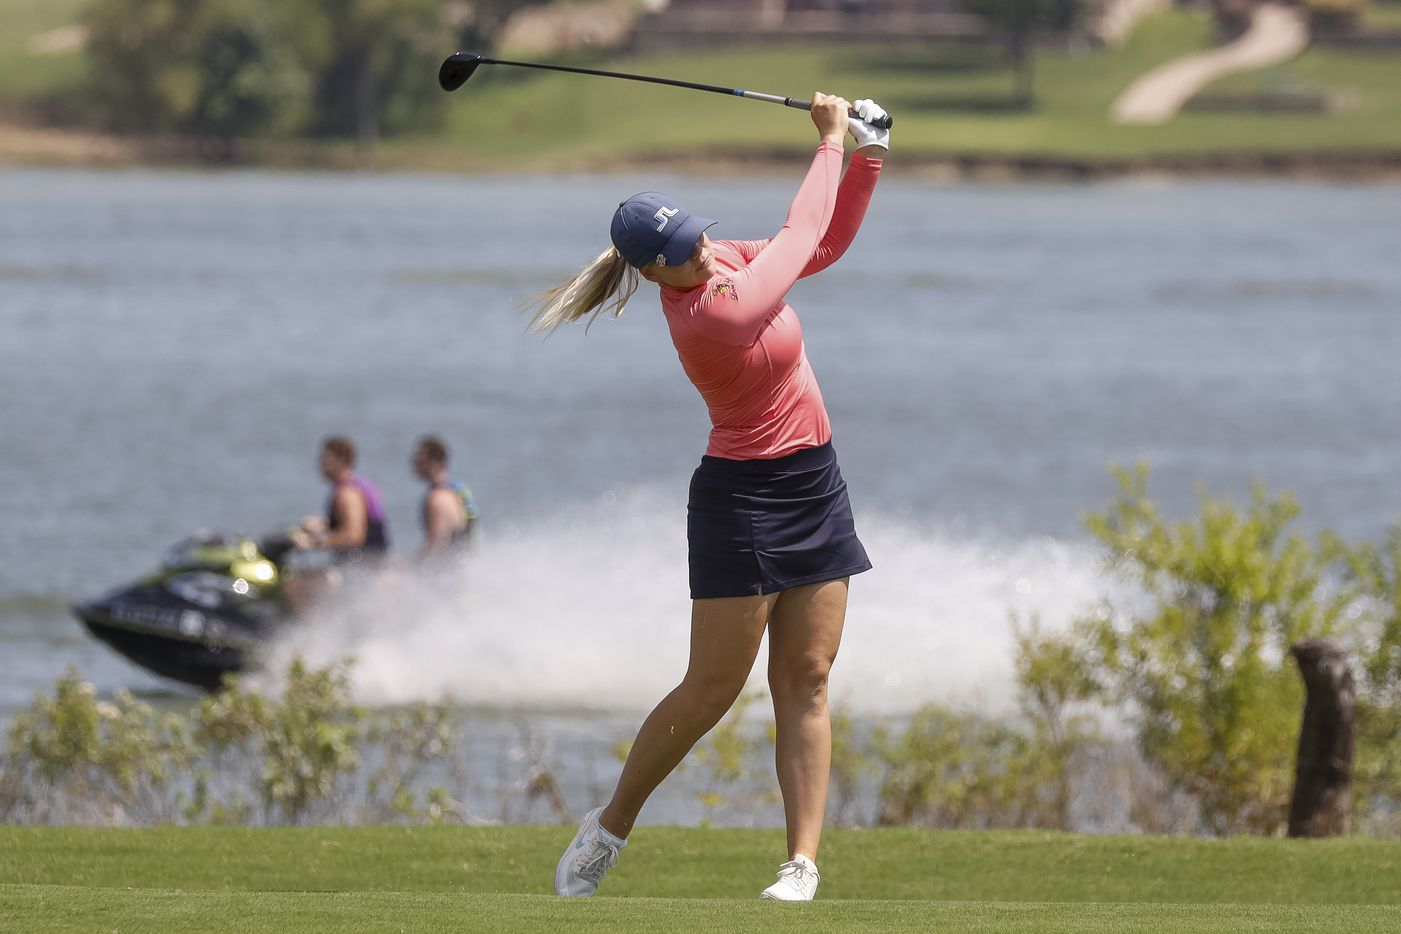 Professional golfer Matilda Castren plays a ball off the No. 5 fairway during the final round of the LPGA VOA Classic on Sunday, July 4, 2021, in The Colony, Texas. (Elias Valverde II/The Dallas Morning News)